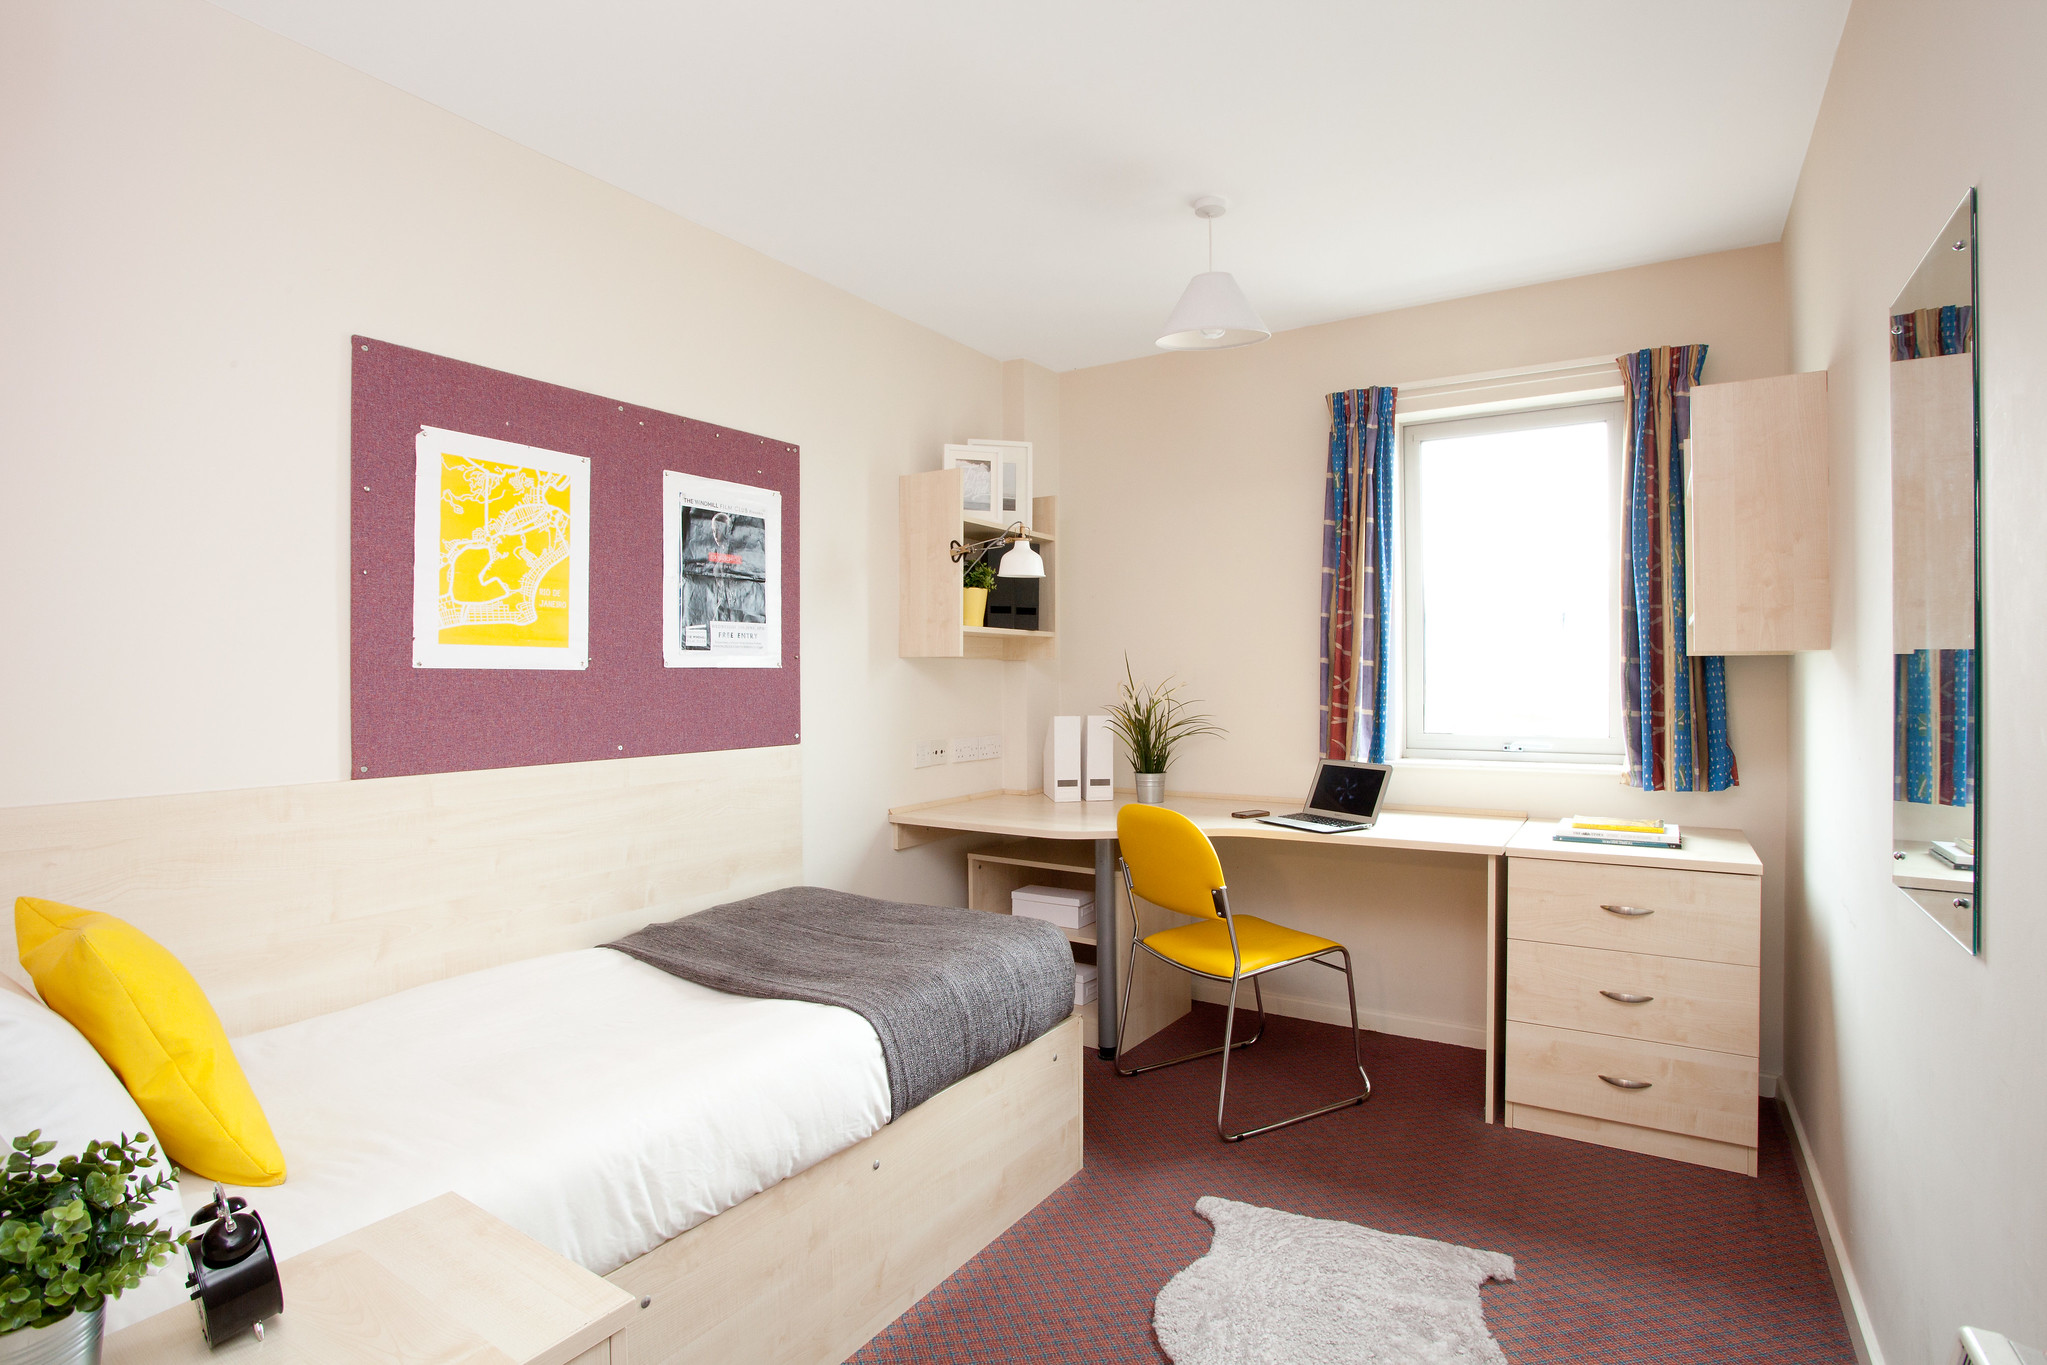 Blenheim Court Accommodation Gallery